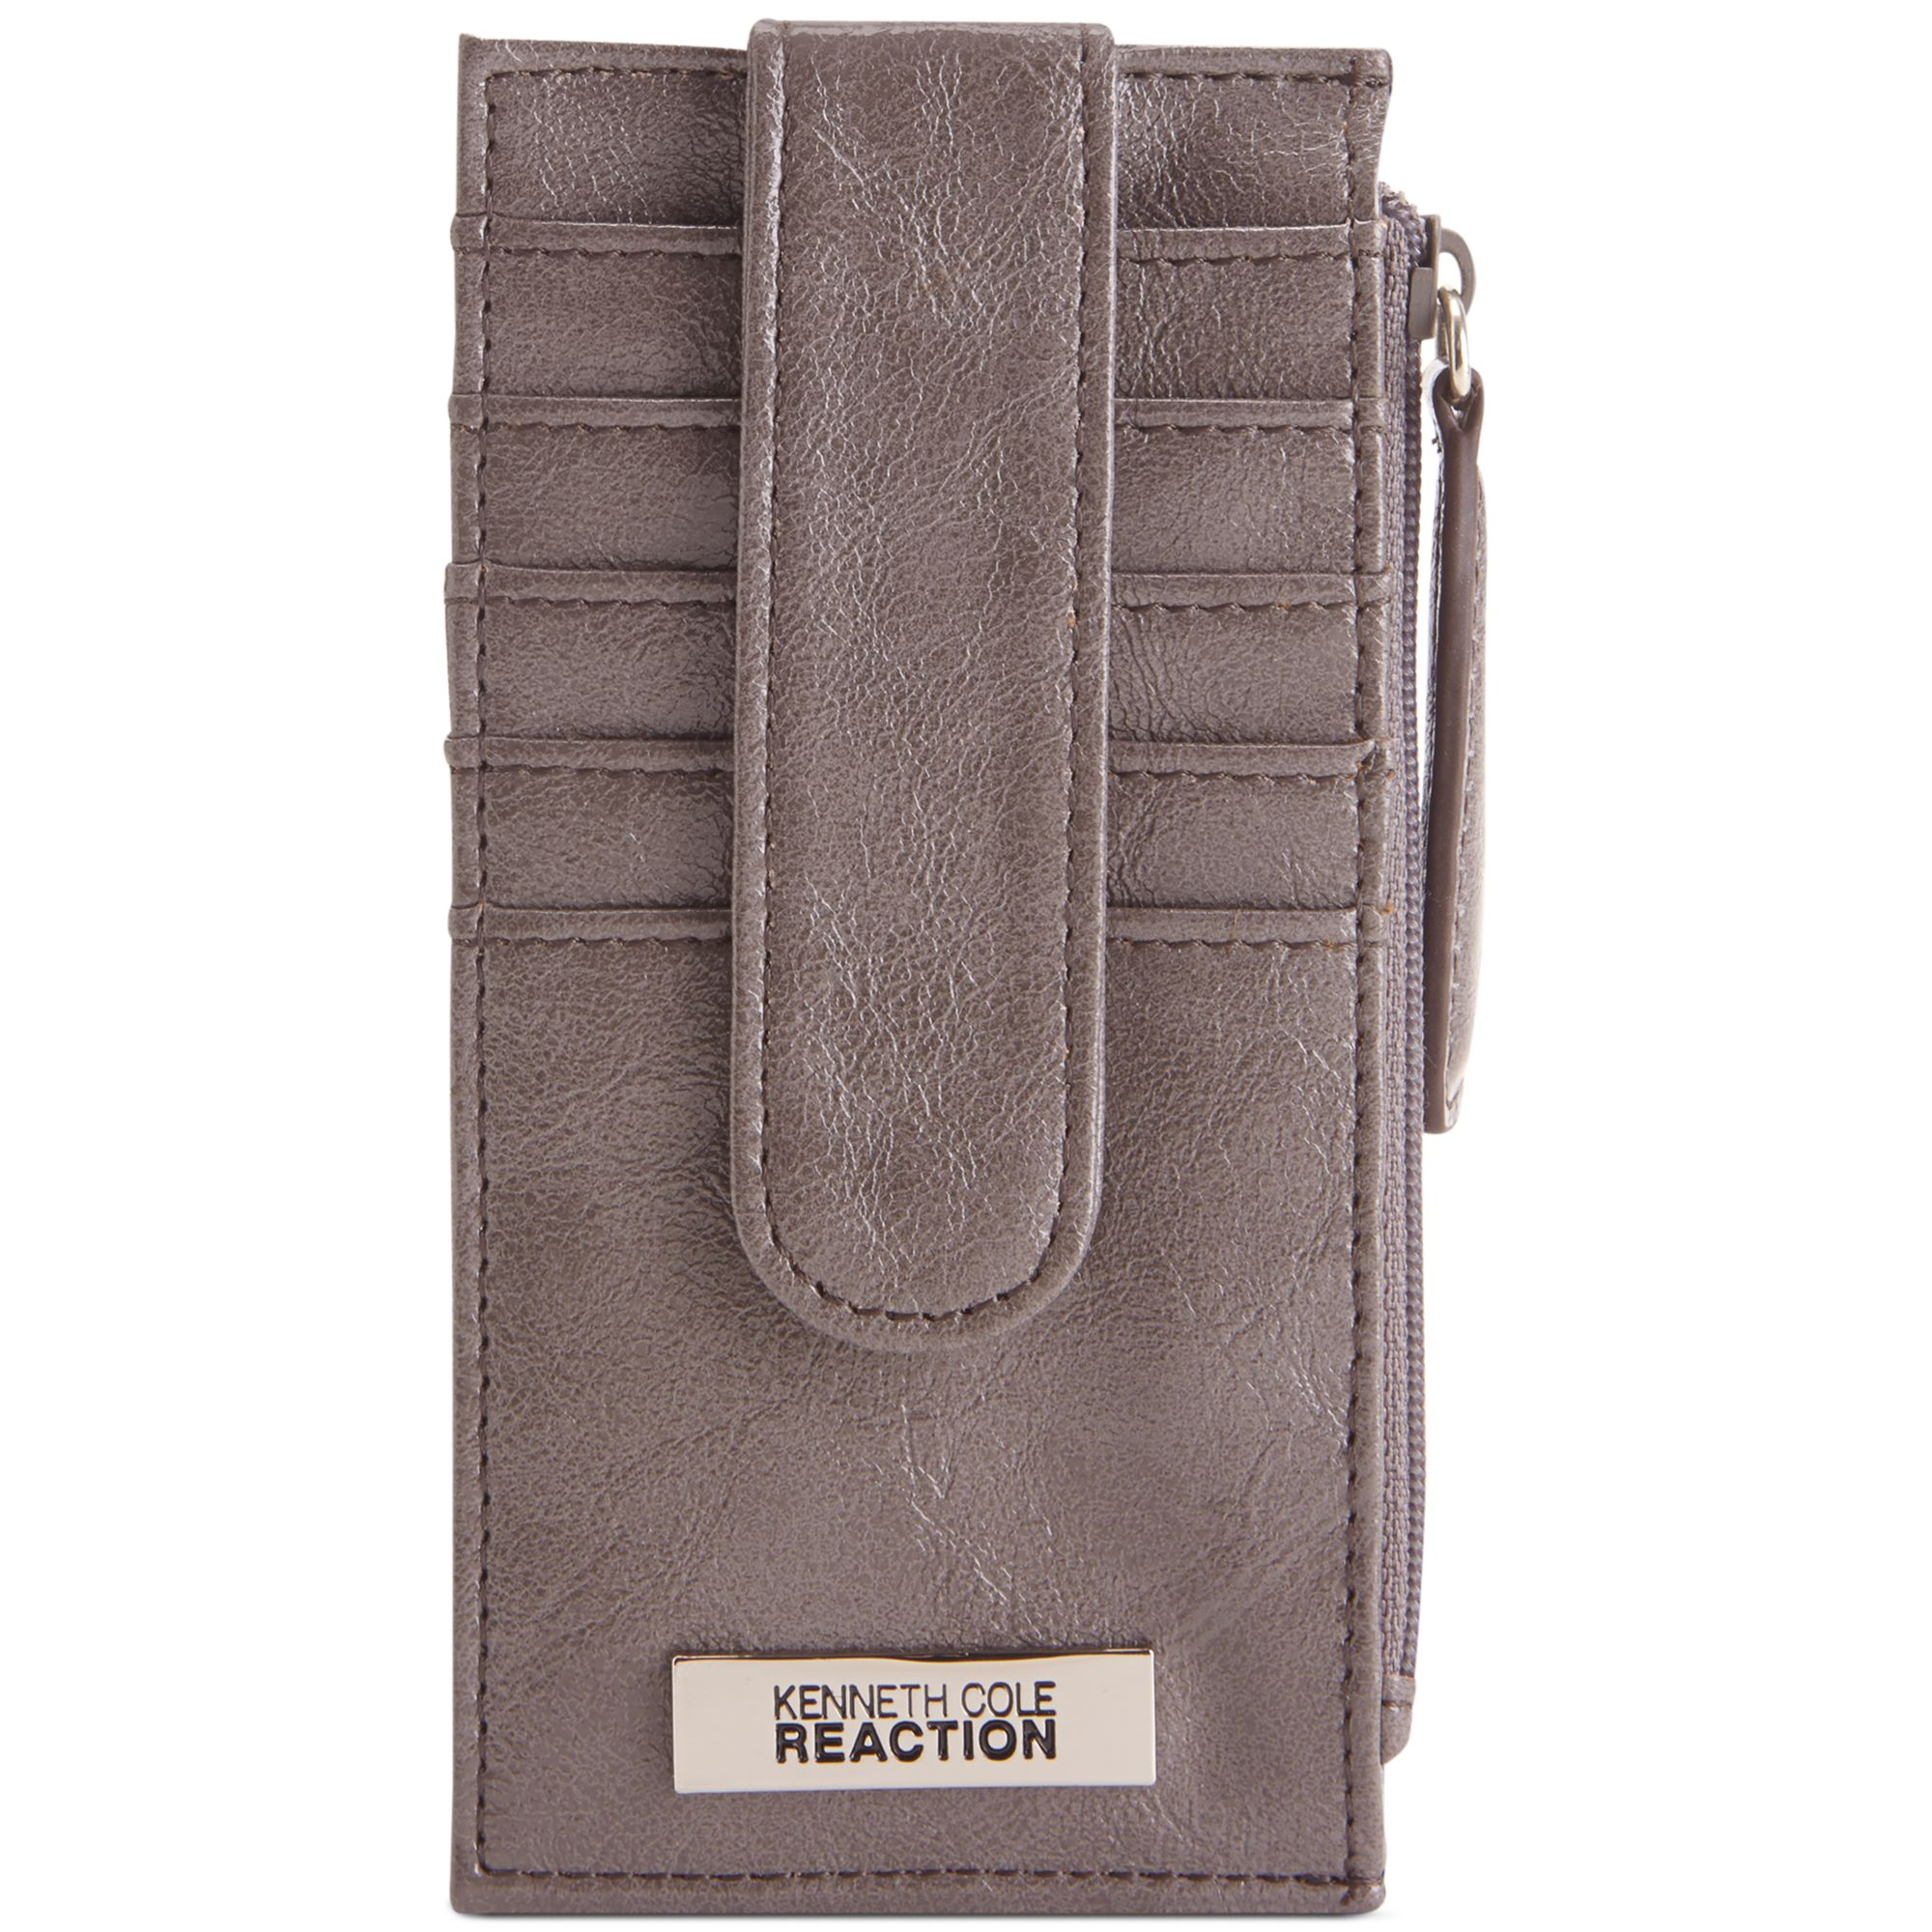 Kenneth cole reaction Must Haves Card Holder in Gray | Lyst